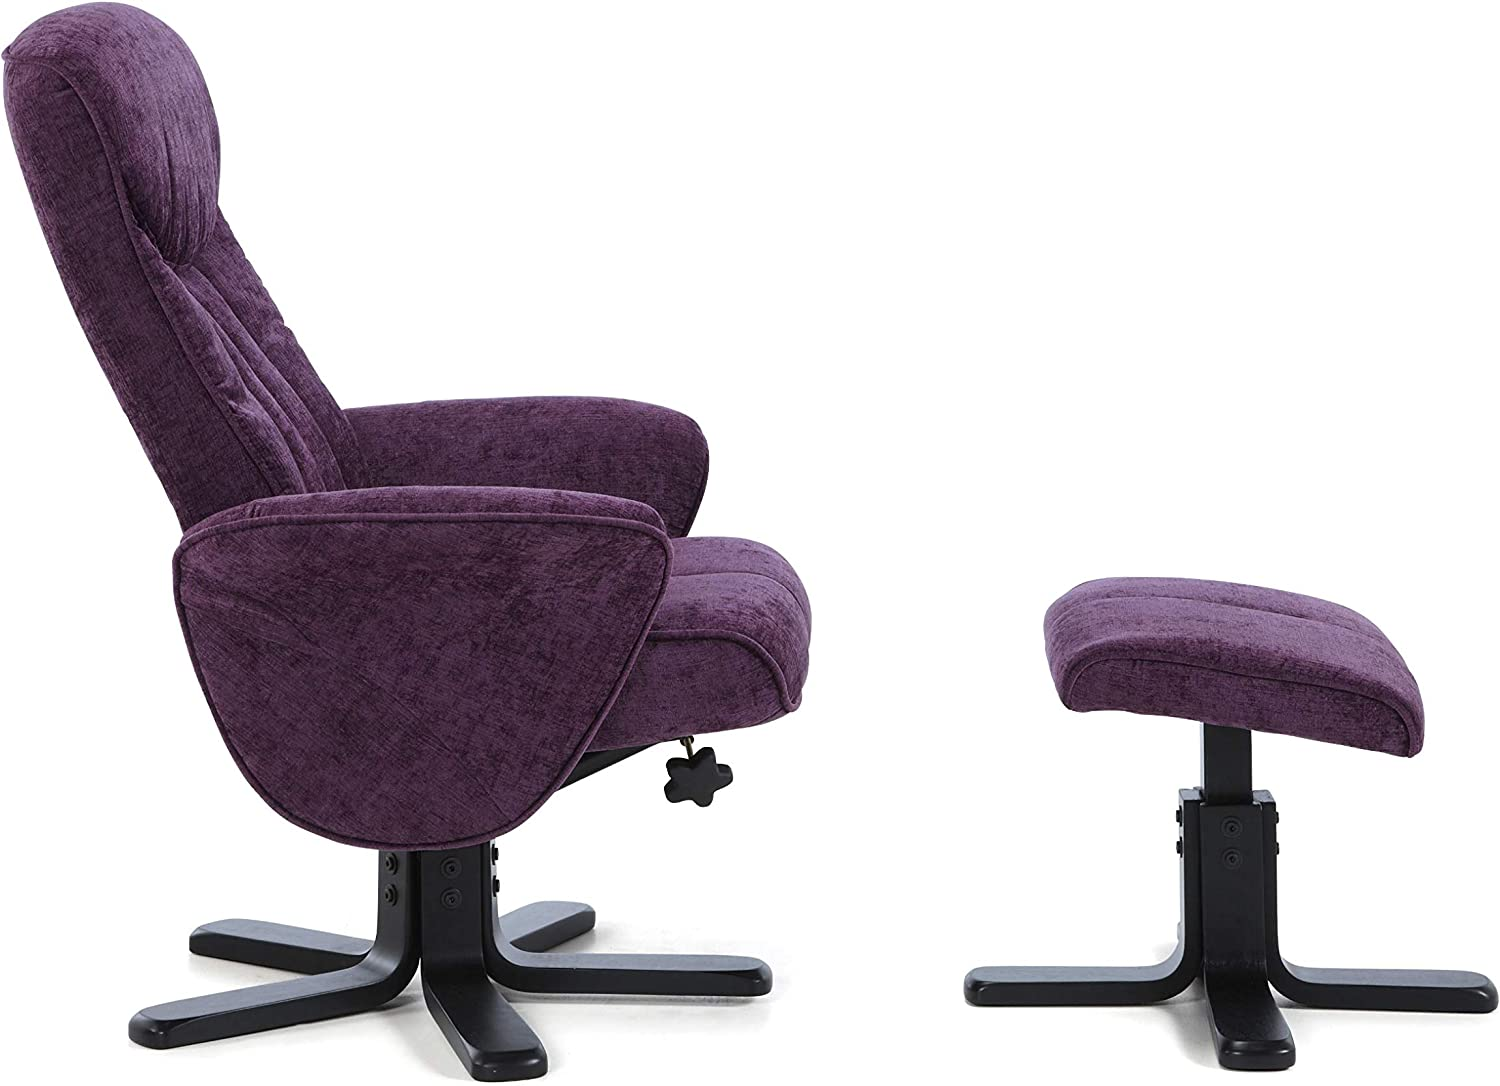 Amethyst Save On Goods UK Fabric upholstered Swivel,Adjustable Recliner Chair,purple,cream,grey reclining office study seat with footstool